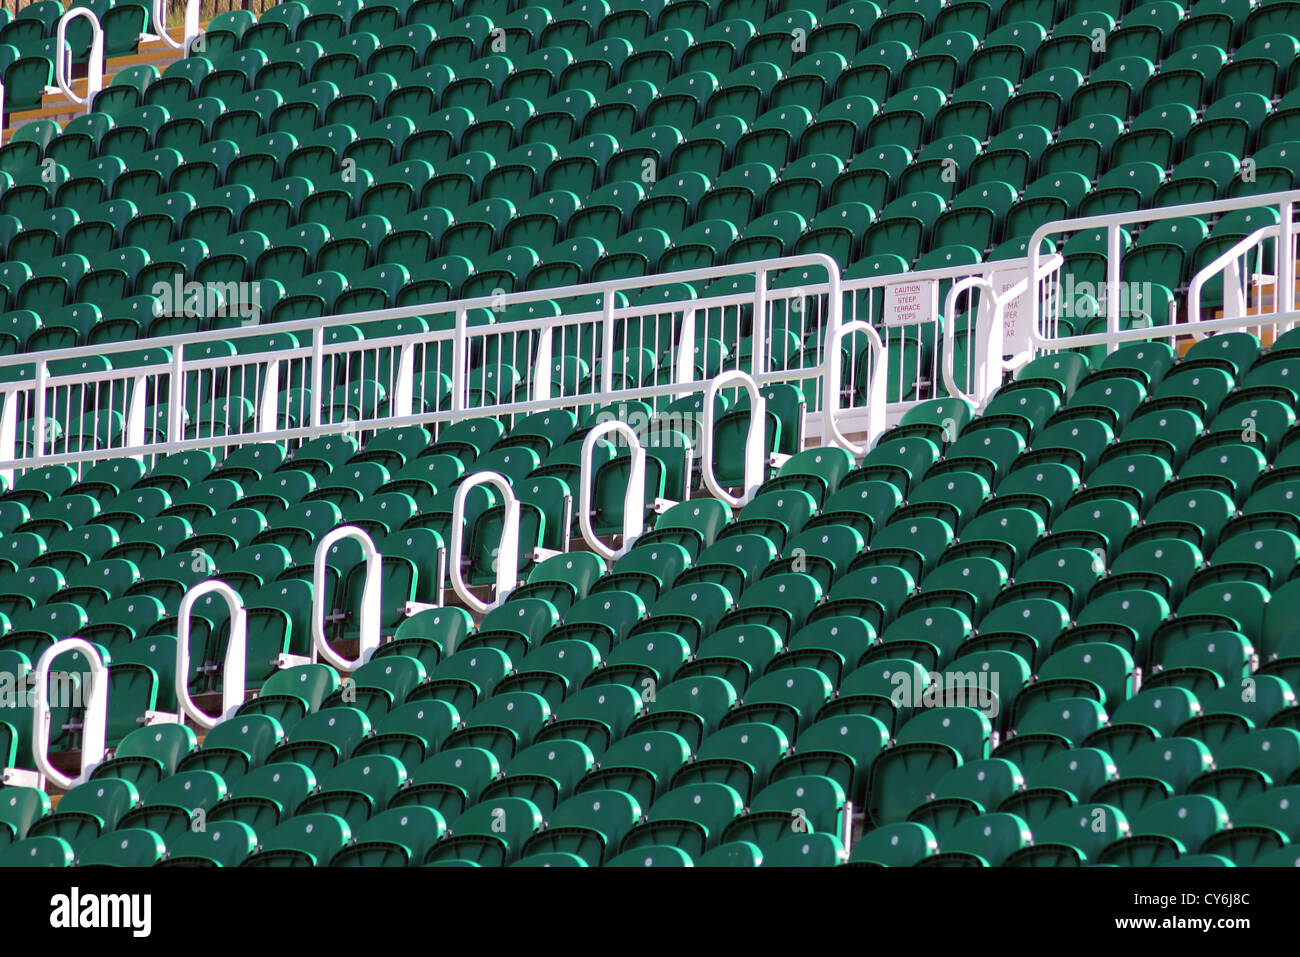 Terrace seating in outdoor stadium or arena with green theme. - Stock Image